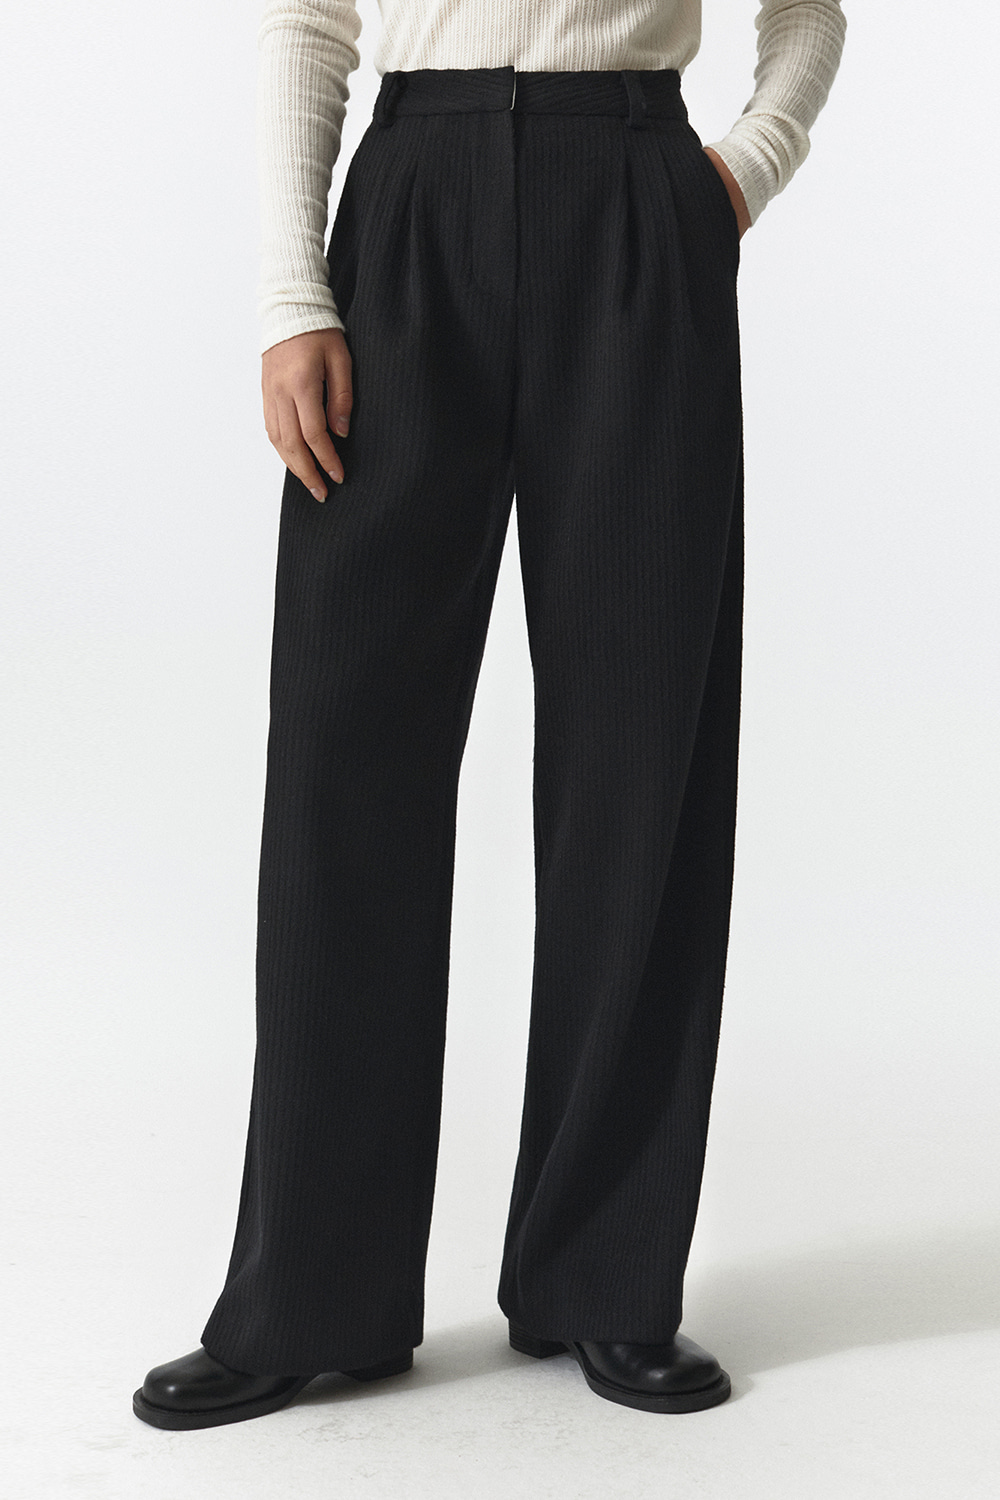 Wool Over Pants Women JA [Black]